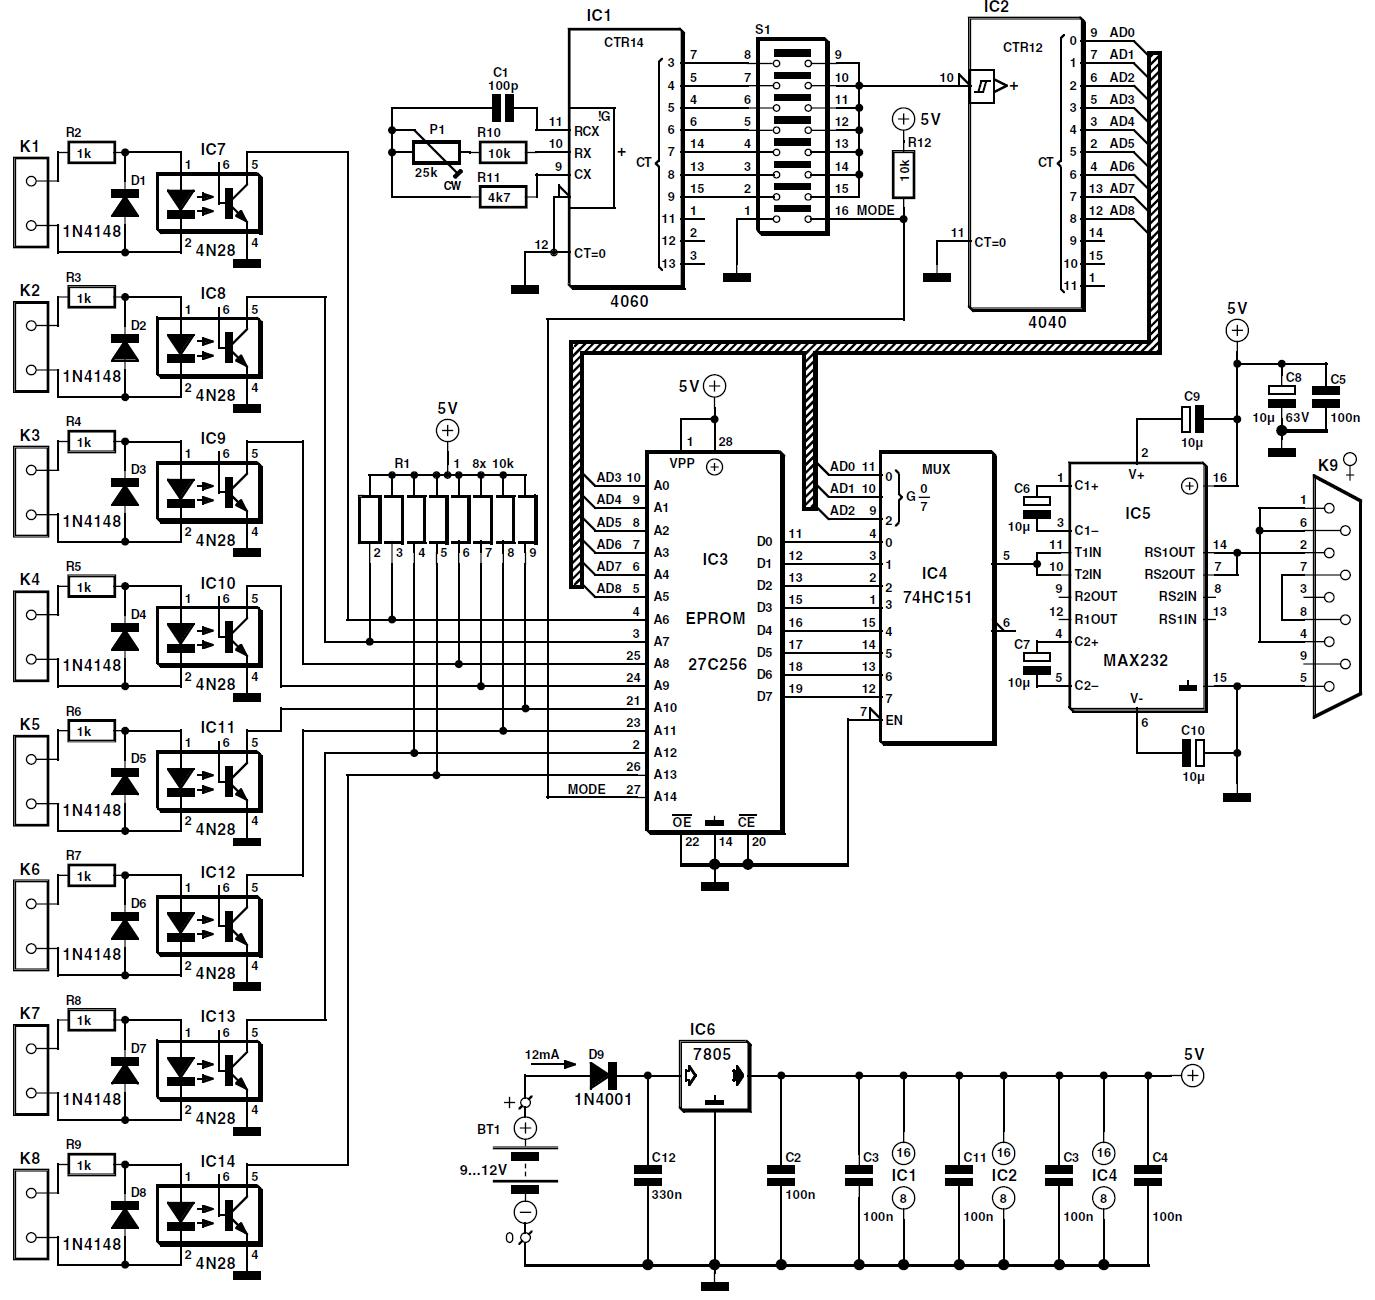 Circuit Breakers Schematic